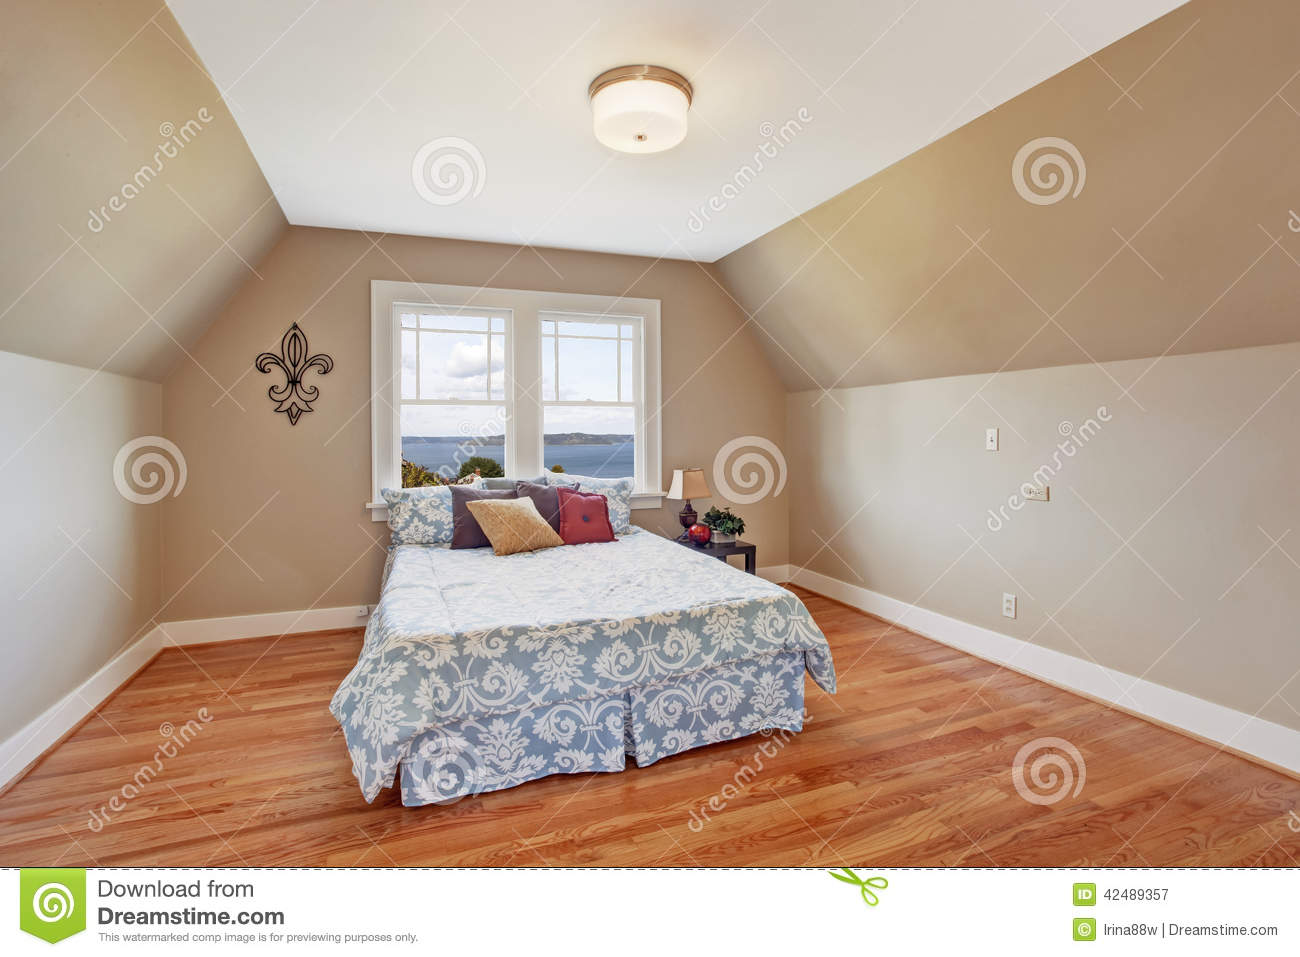 Cozy Bedroom Interior With Vaulted Ceiling